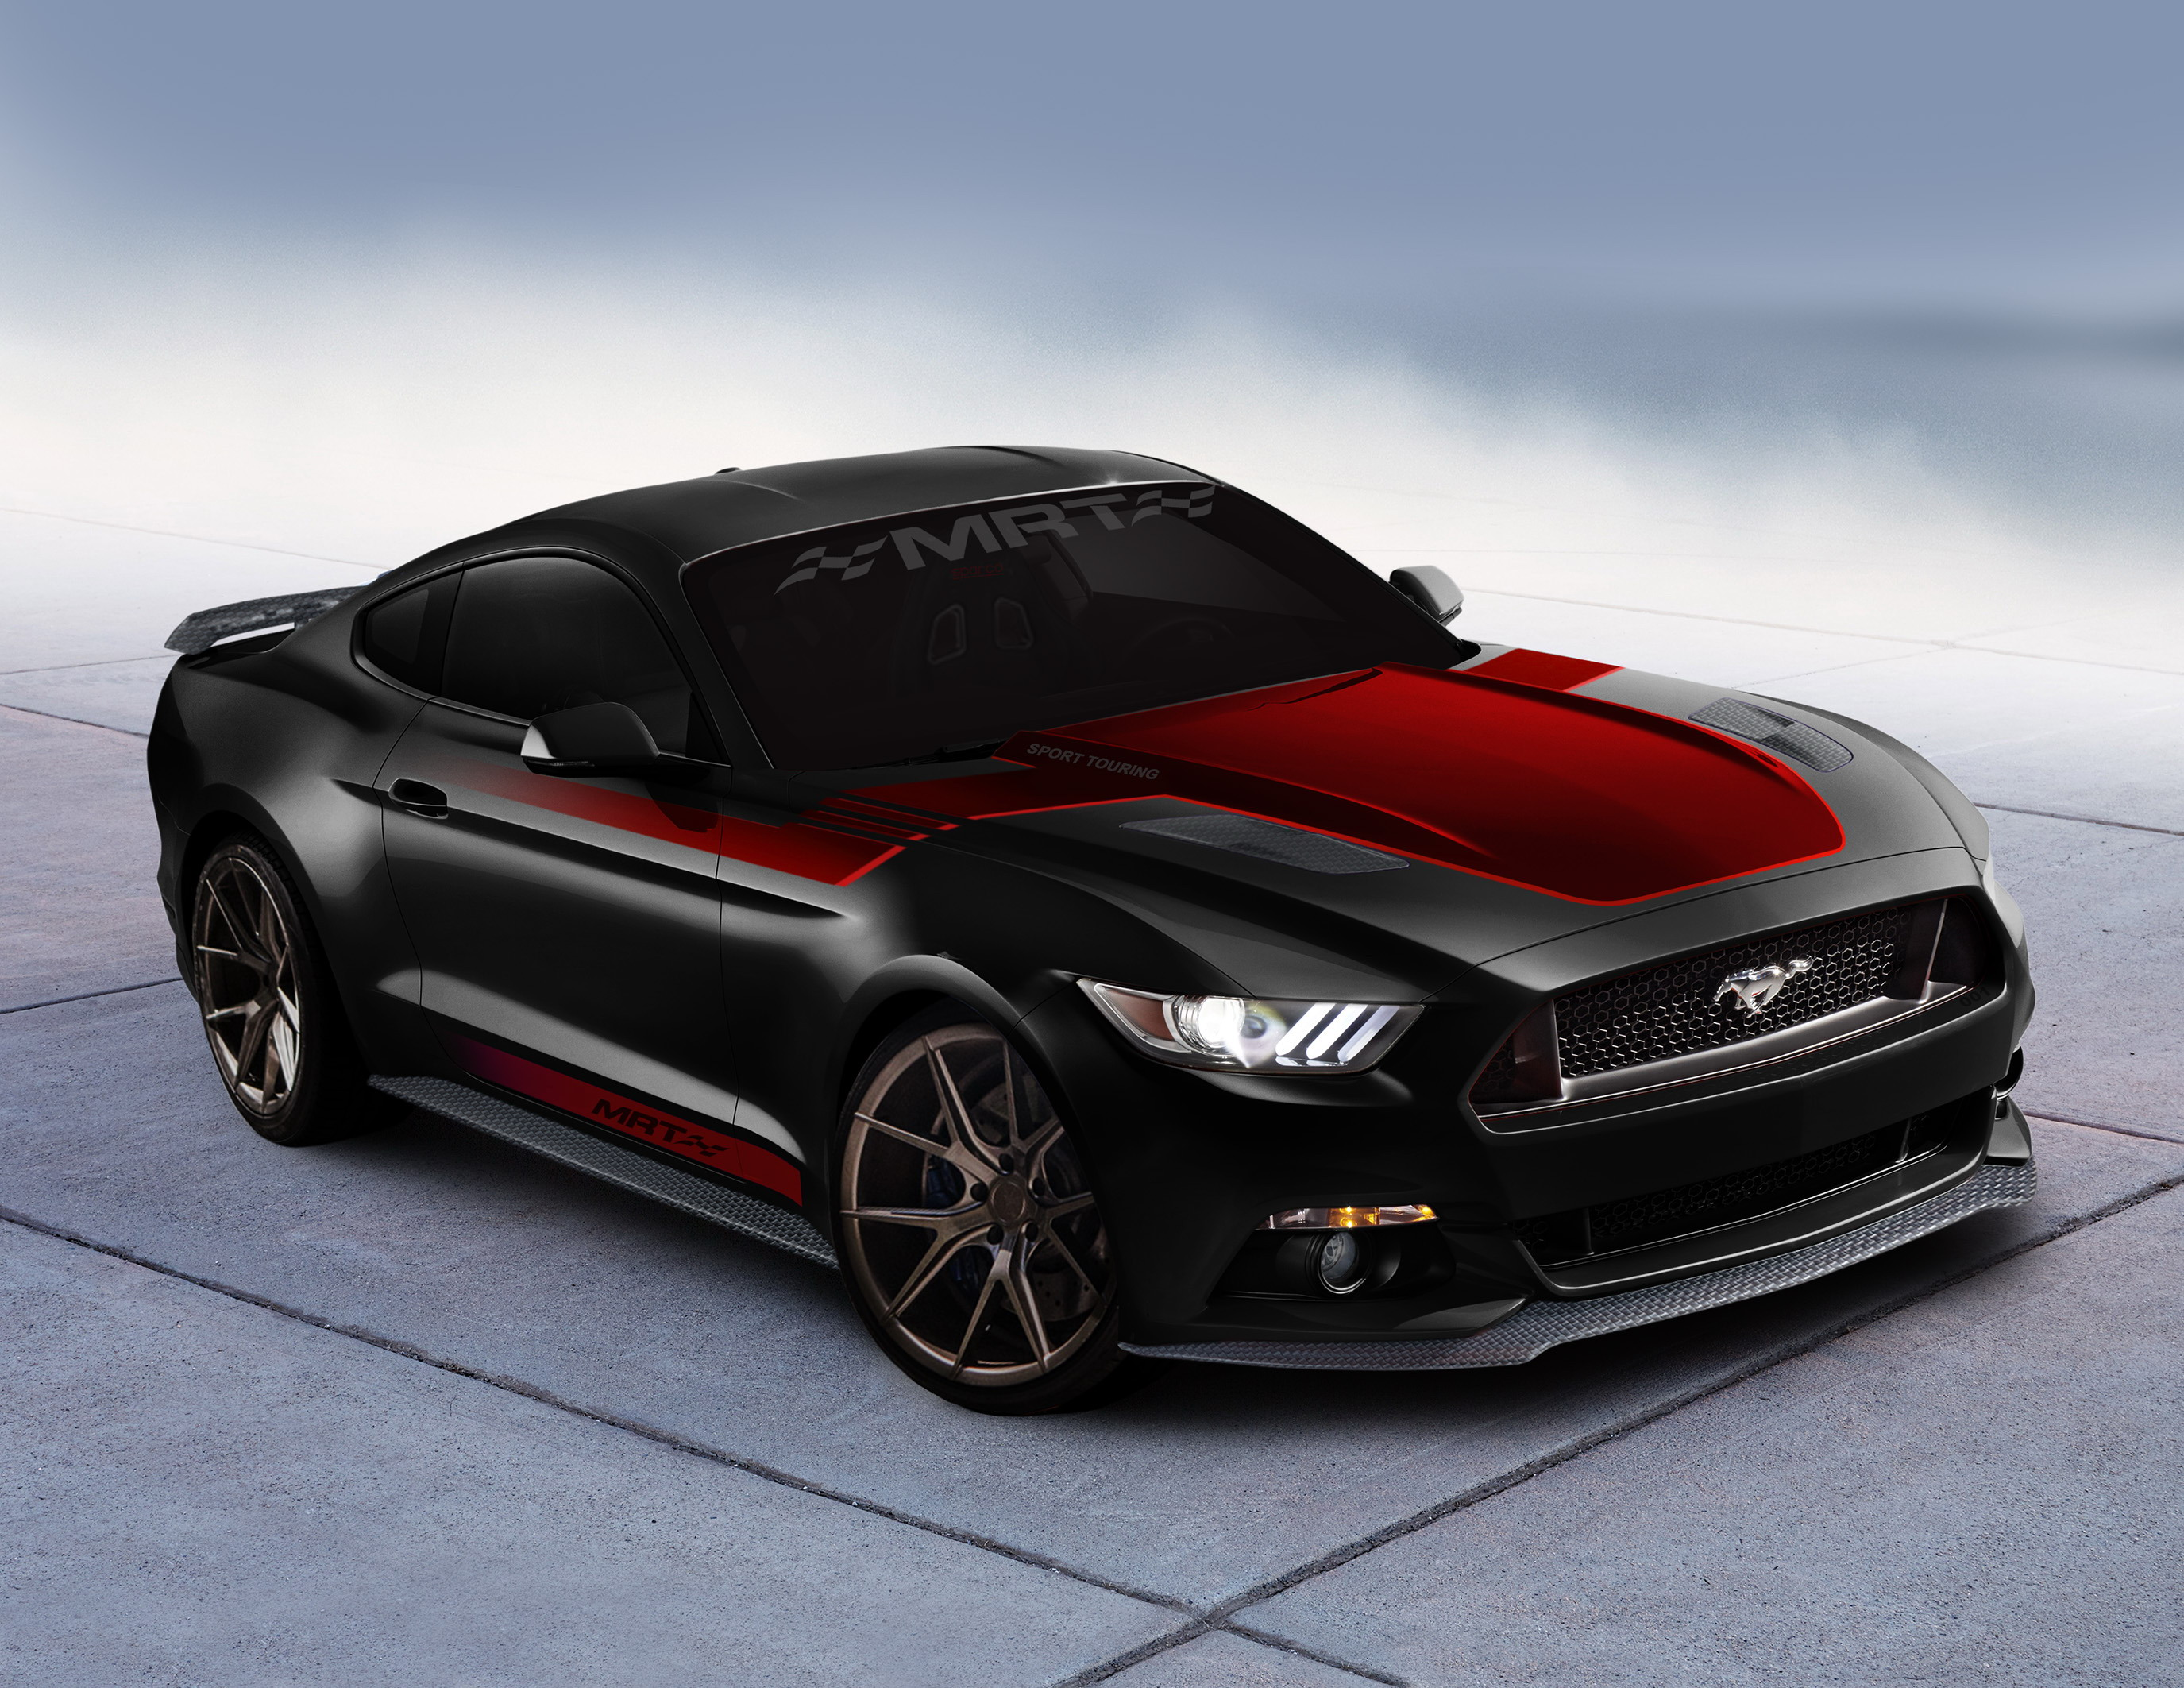 2017 ford mustang fastback sport touring by mrt